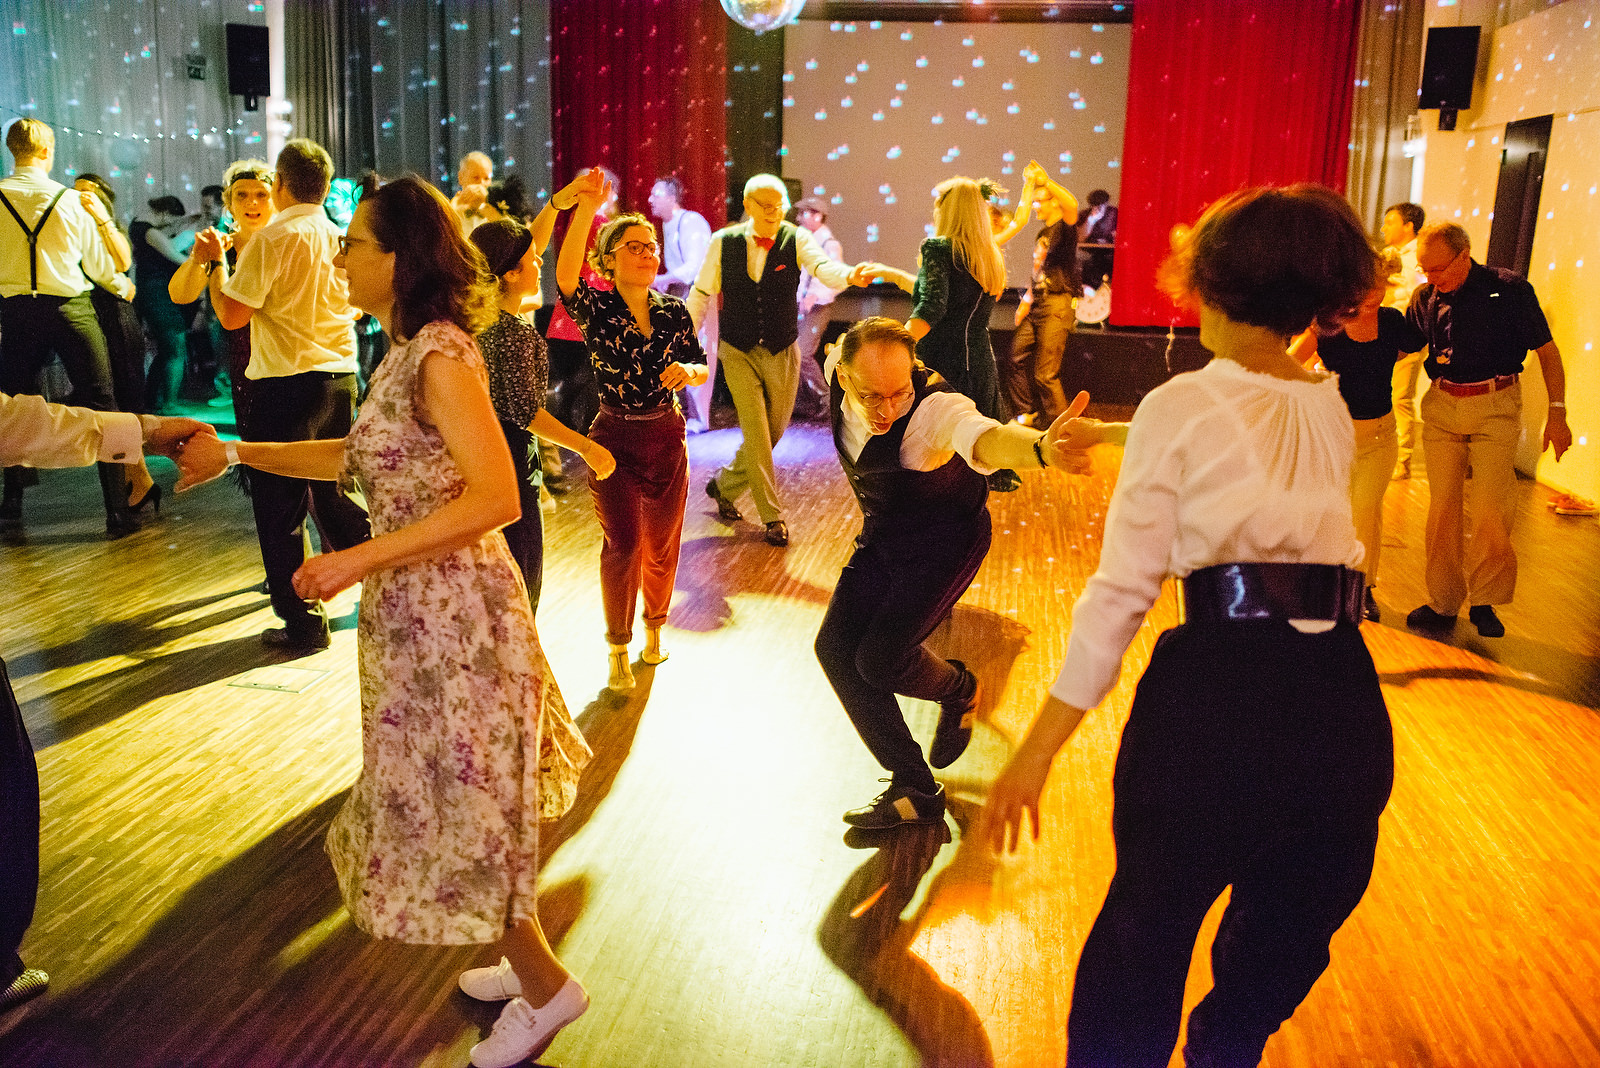 Fotograf Konstanz - Lindy Hop Swing Silvester Party Fotograf Konstanz EFP 16 - Lindy-Hop Swing New Year's Eve Party  - 14 -